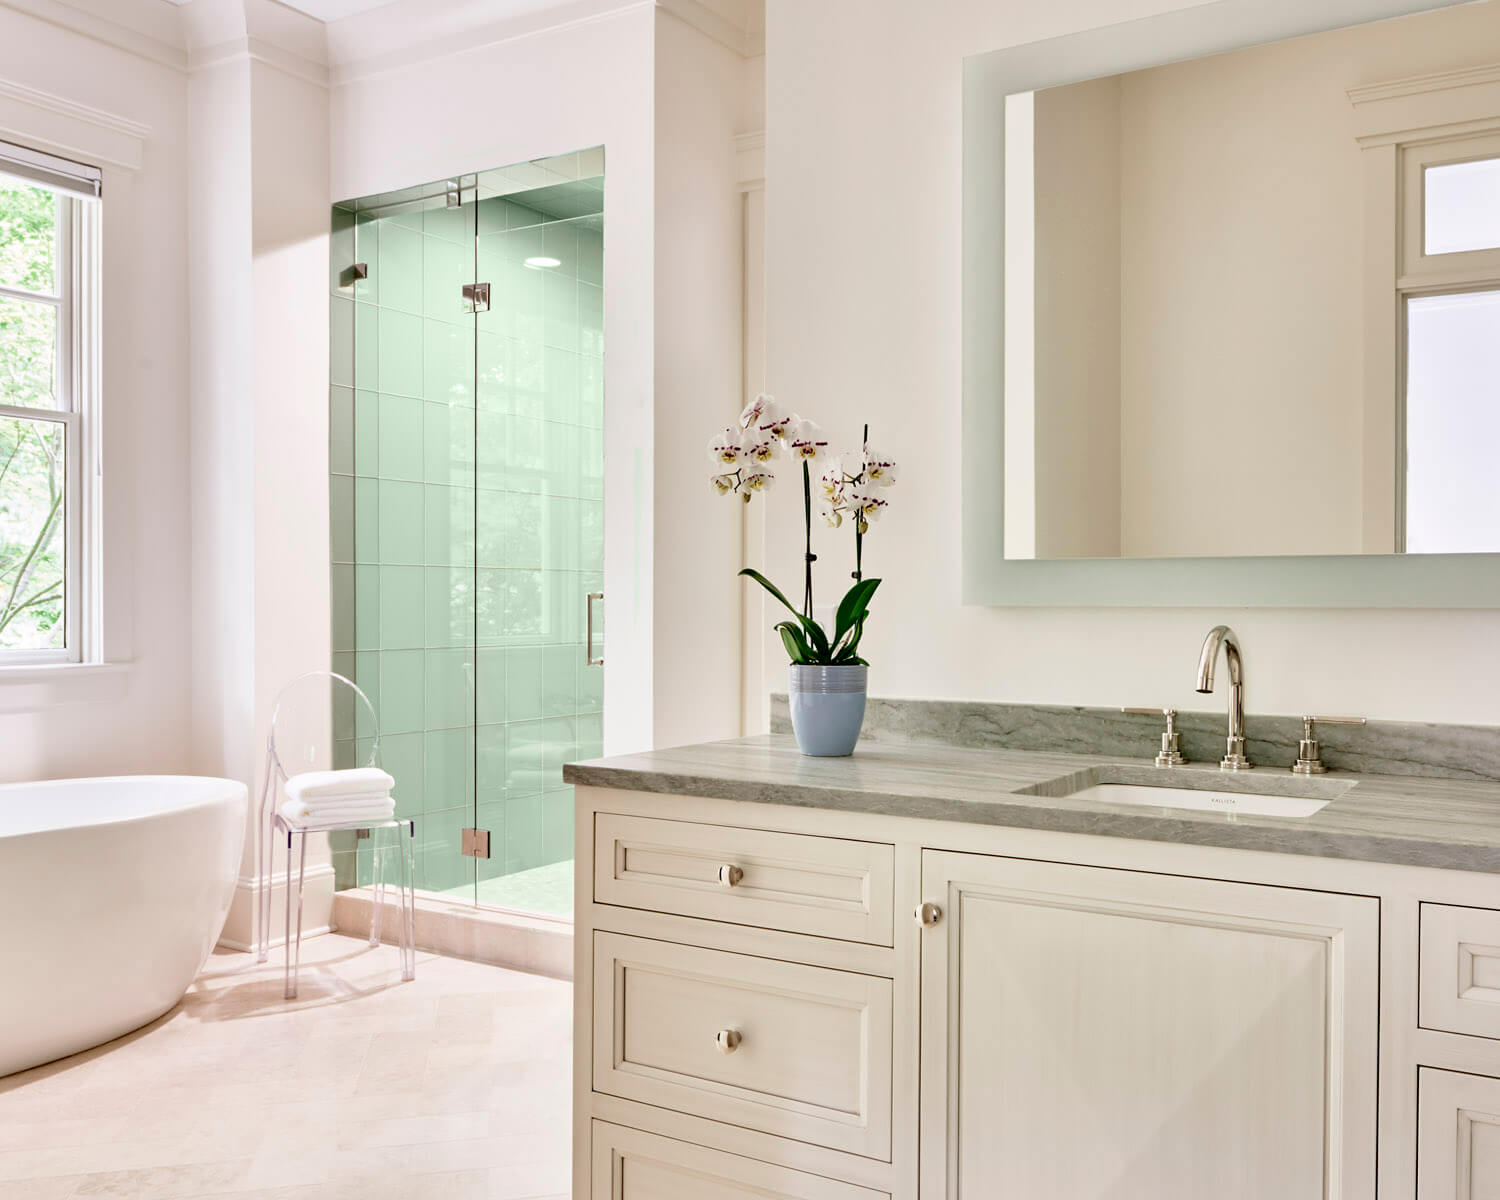 Beautifully Simple Cabinet Design For Your Bathroom